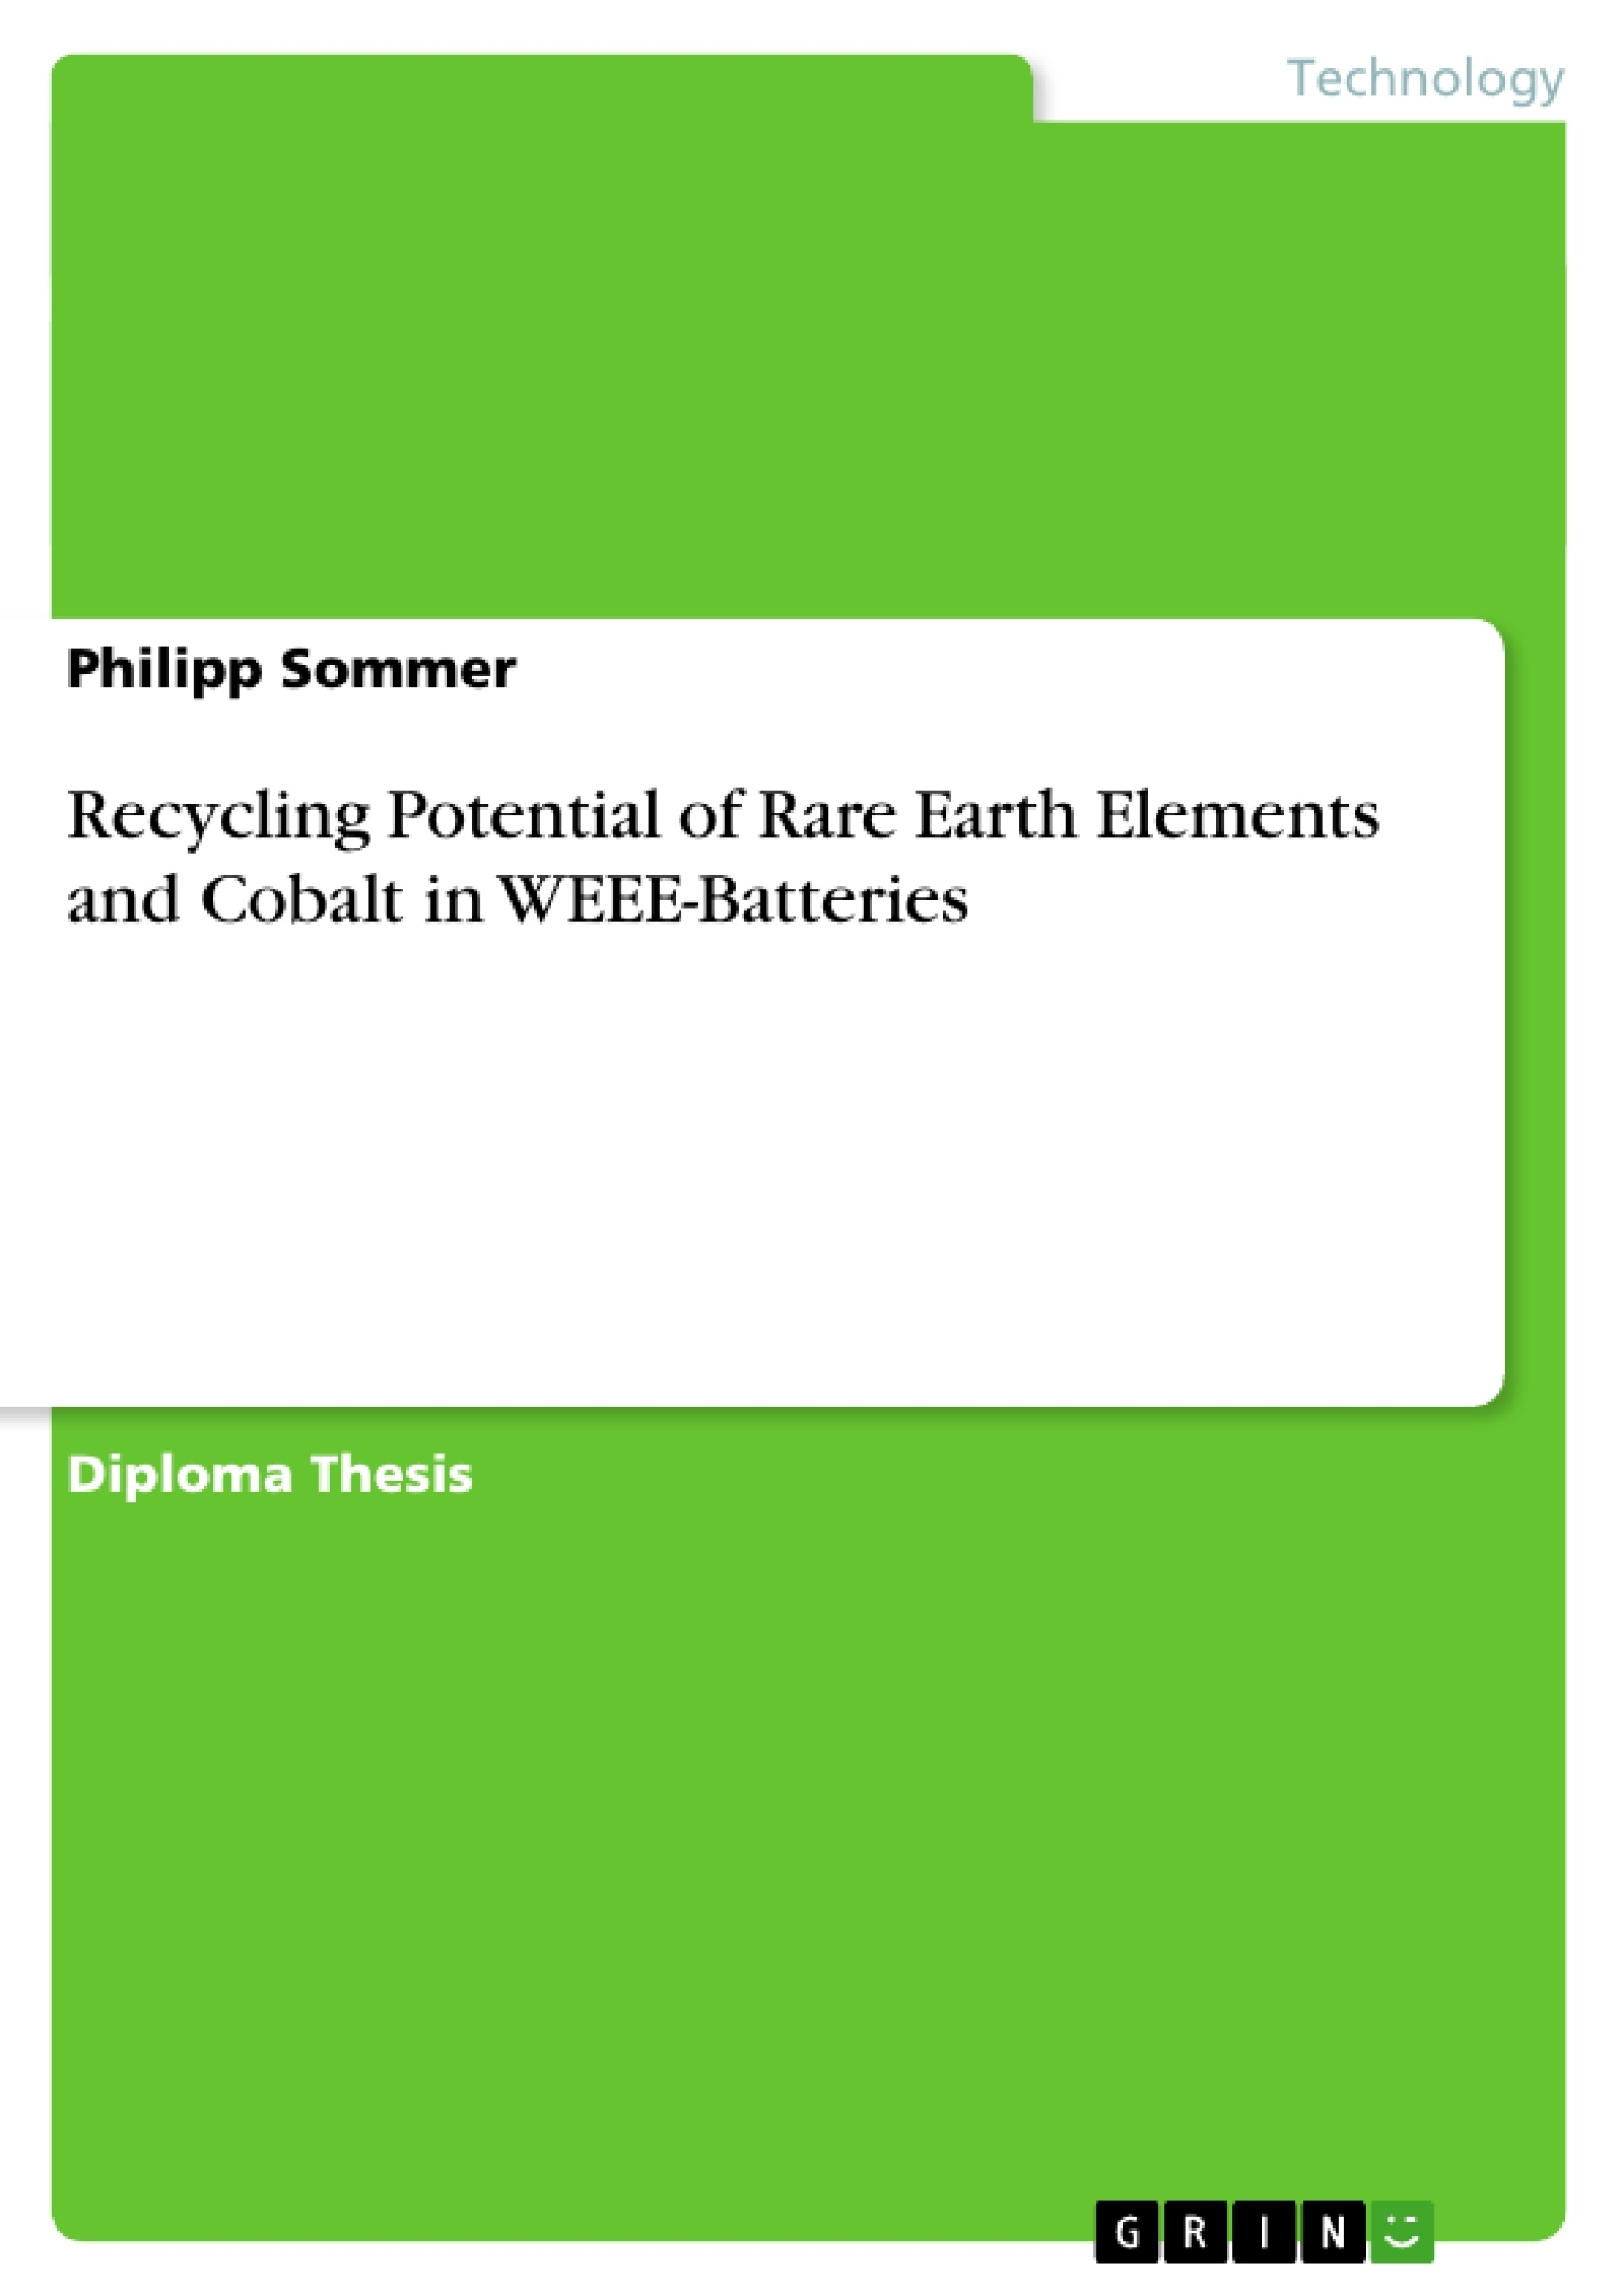 Title: Recycling Potential of Rare Earth Elements and Cobalt in WEEE-Batteries